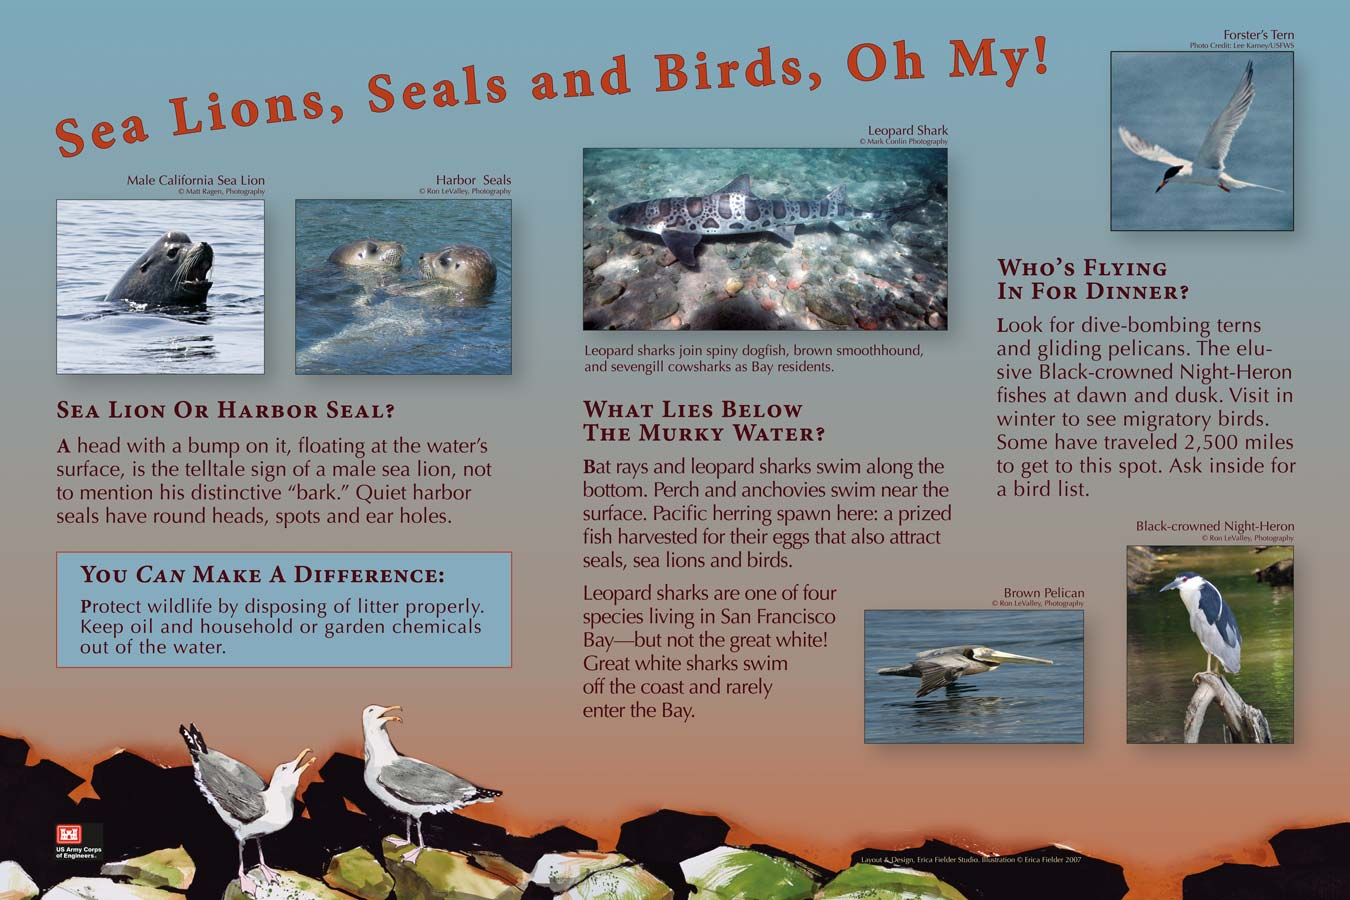 The education board shows photographer Ron LeValley's images describing some of the animals that live around the Army Corps of Engineers' San Francisco Bay Model in Sausalito, California: California sea lion, harbor seal, leopard shark, Forster's turn, brown pelican, and black-crowned night heron.